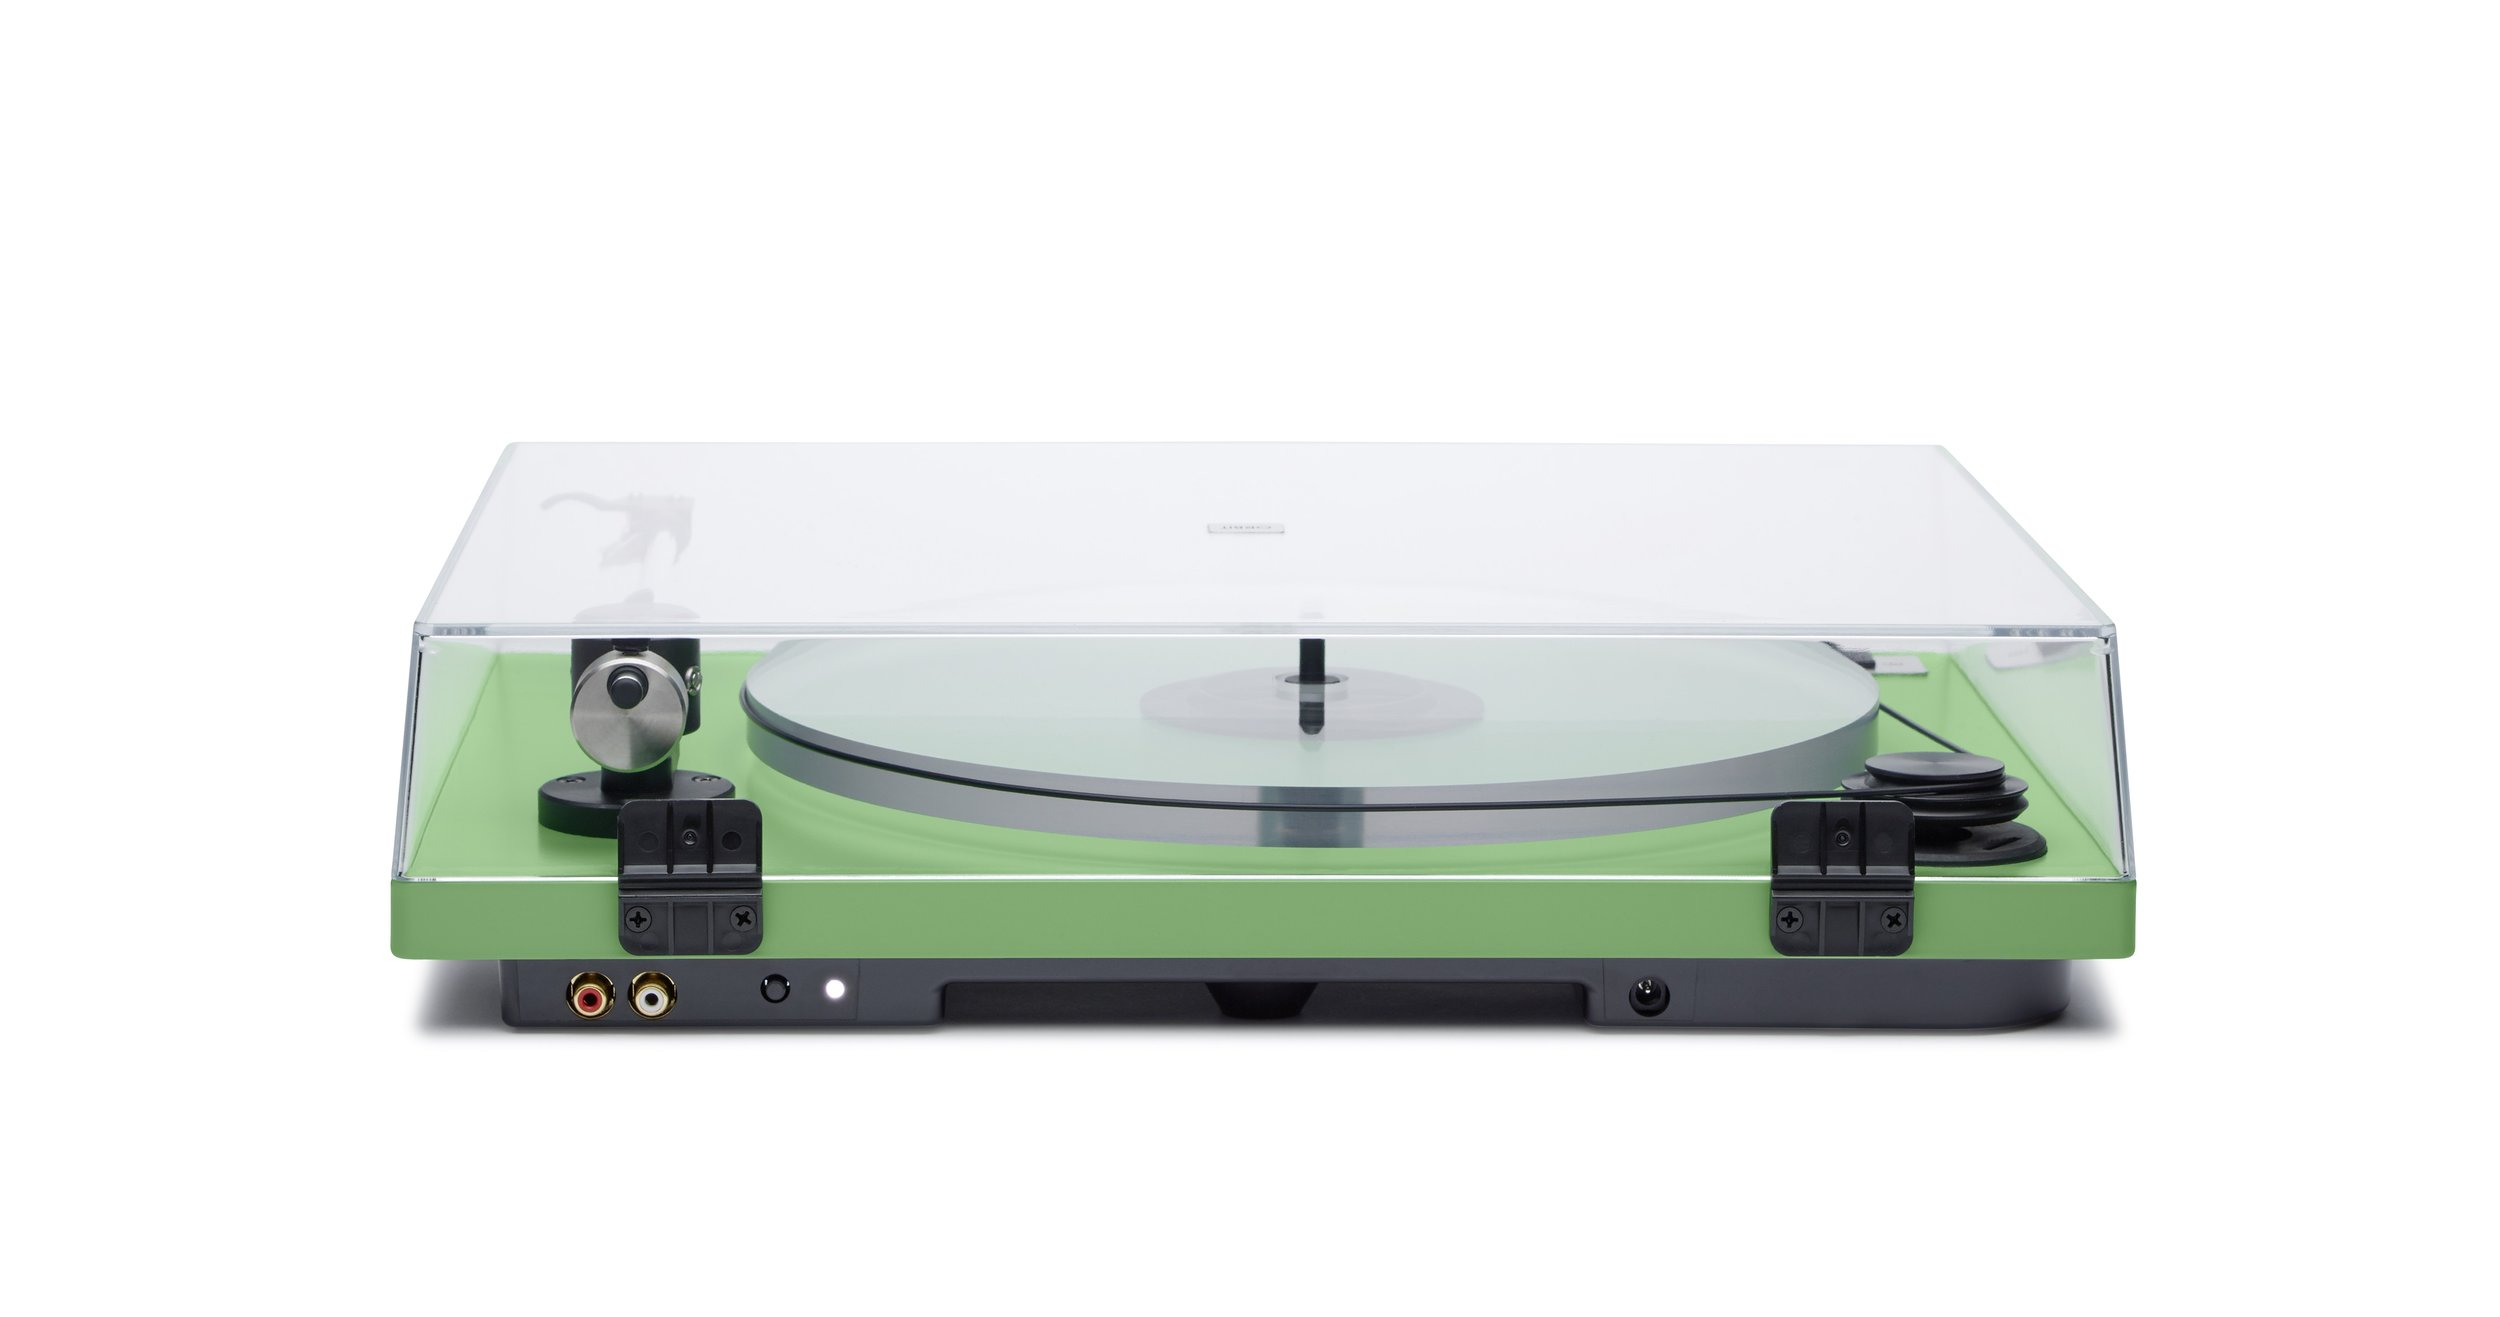 ORBIT PLUS - GREEN ACRYLIC PLATTER ORTOFON OM5E CARTRIDGE DUST COVER w/amp $359 wo/amp 309